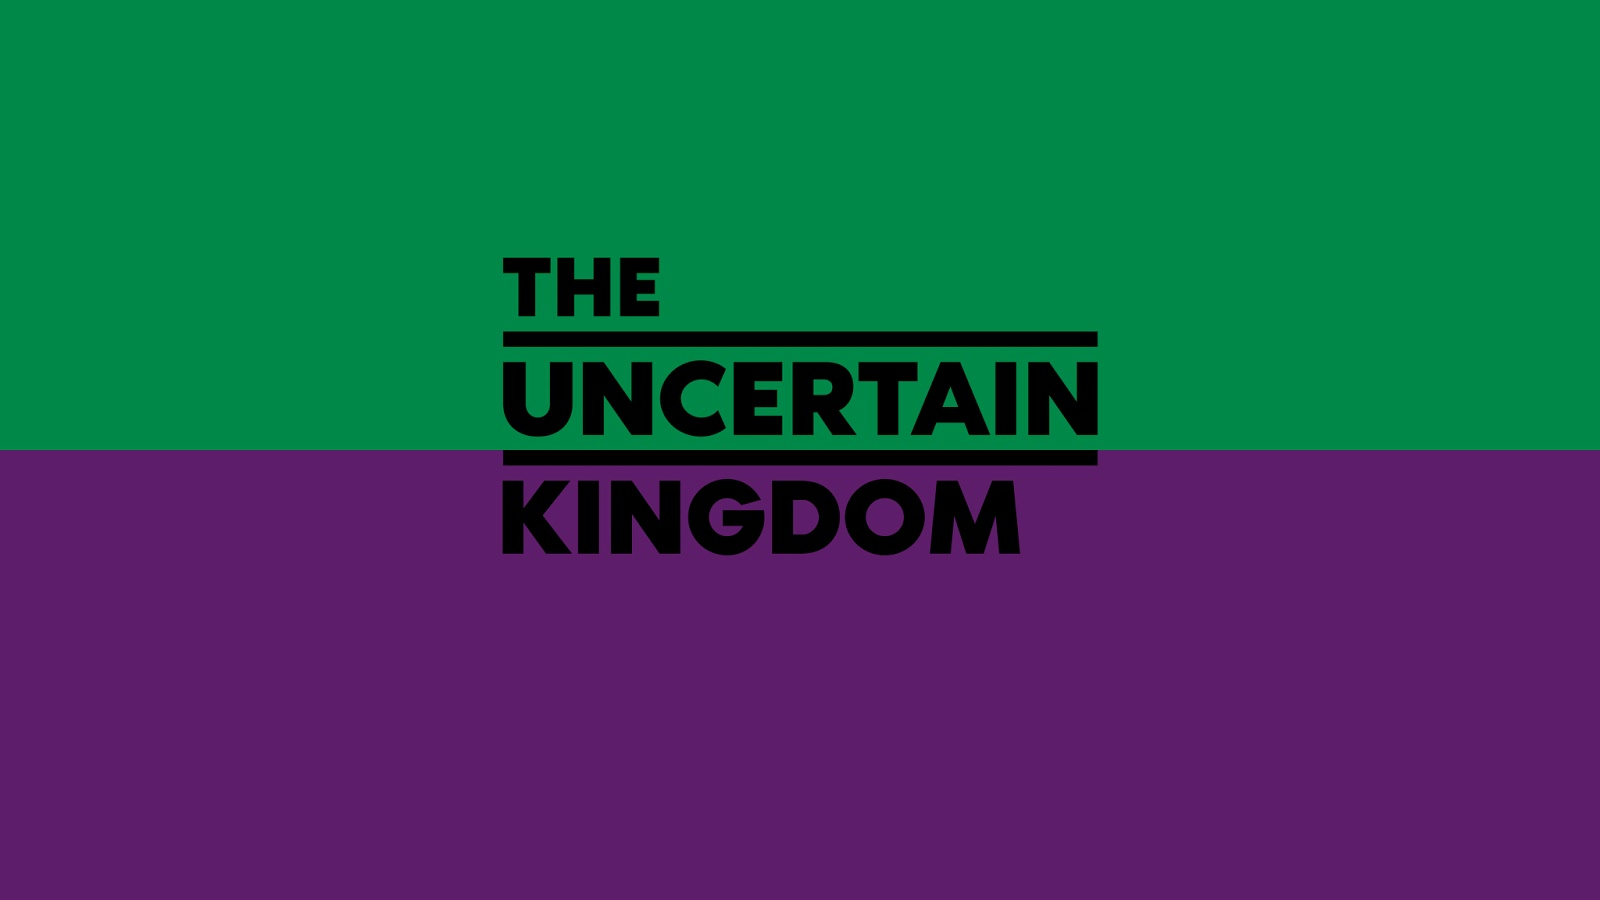 Uncertain Kingdom is commissioning a film about Covid-19 – Deadline May 12th